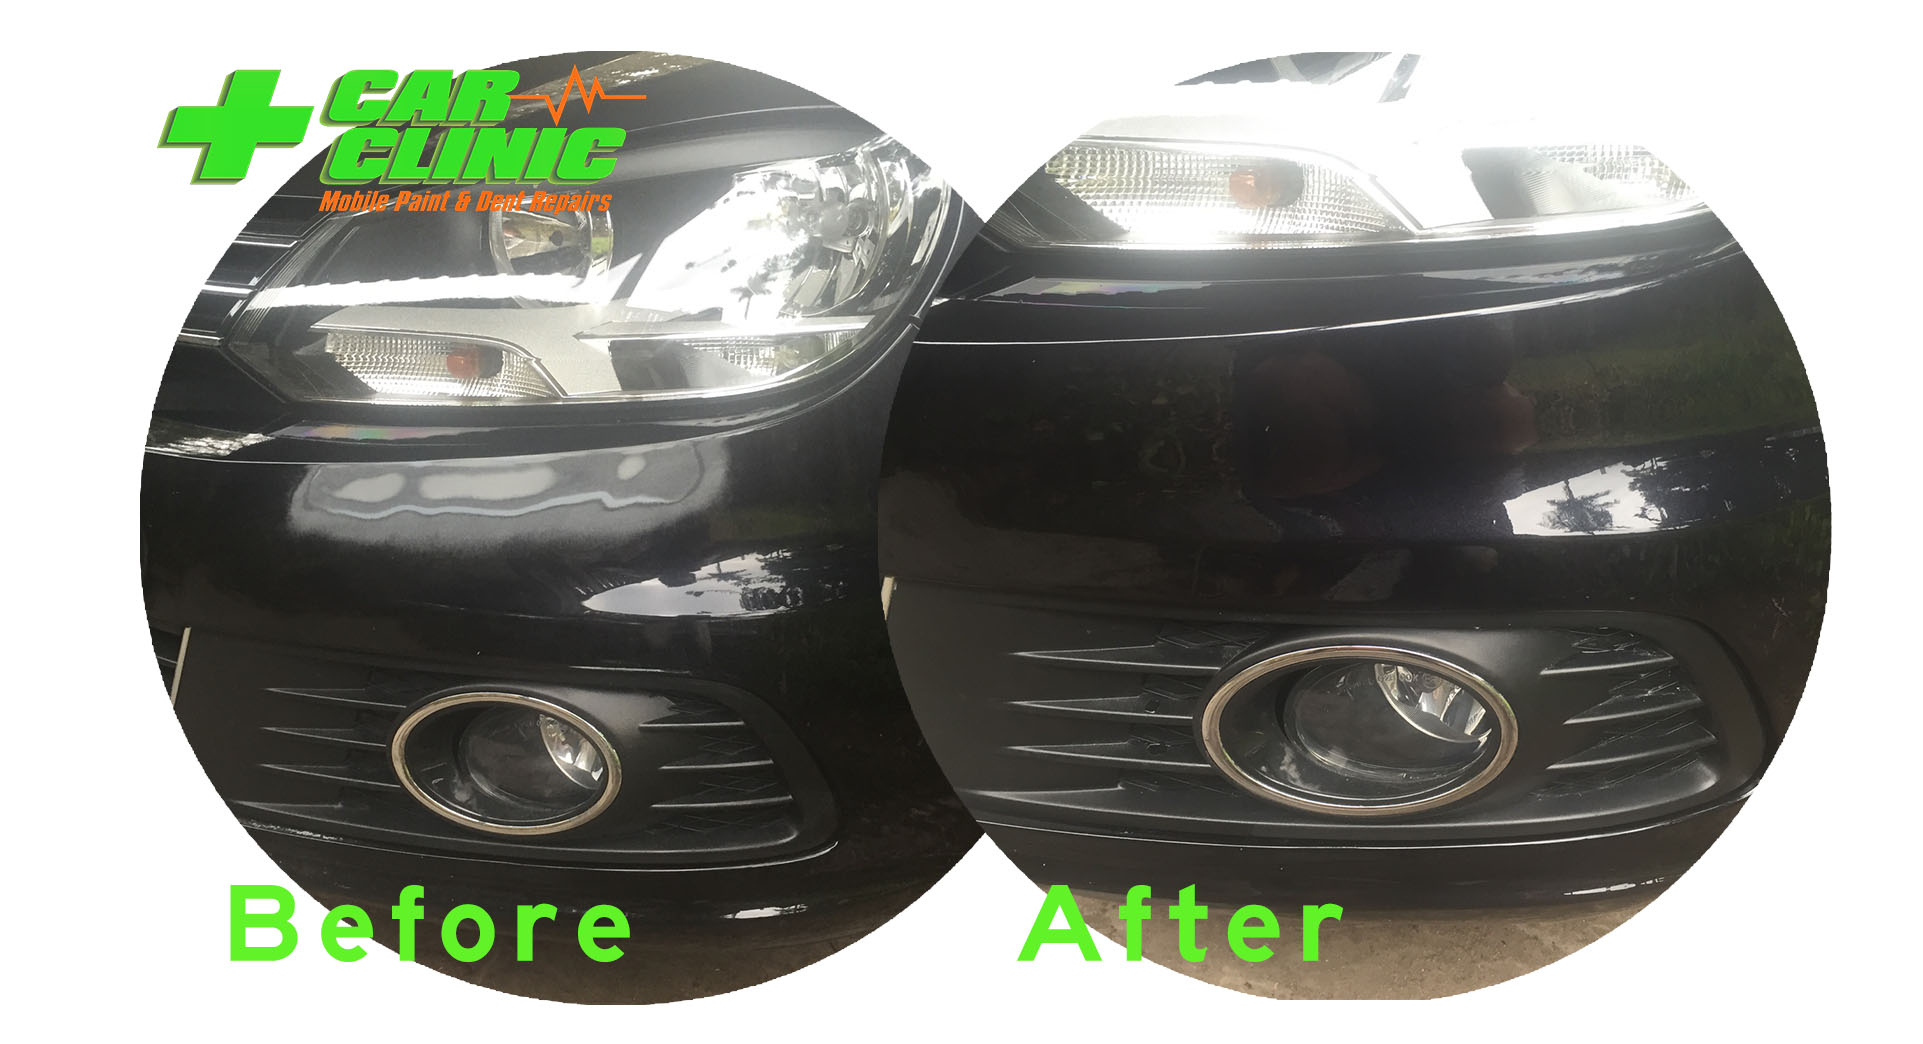 Mobile Paint & Dent Repairs - Brisbane - Before After Image 03